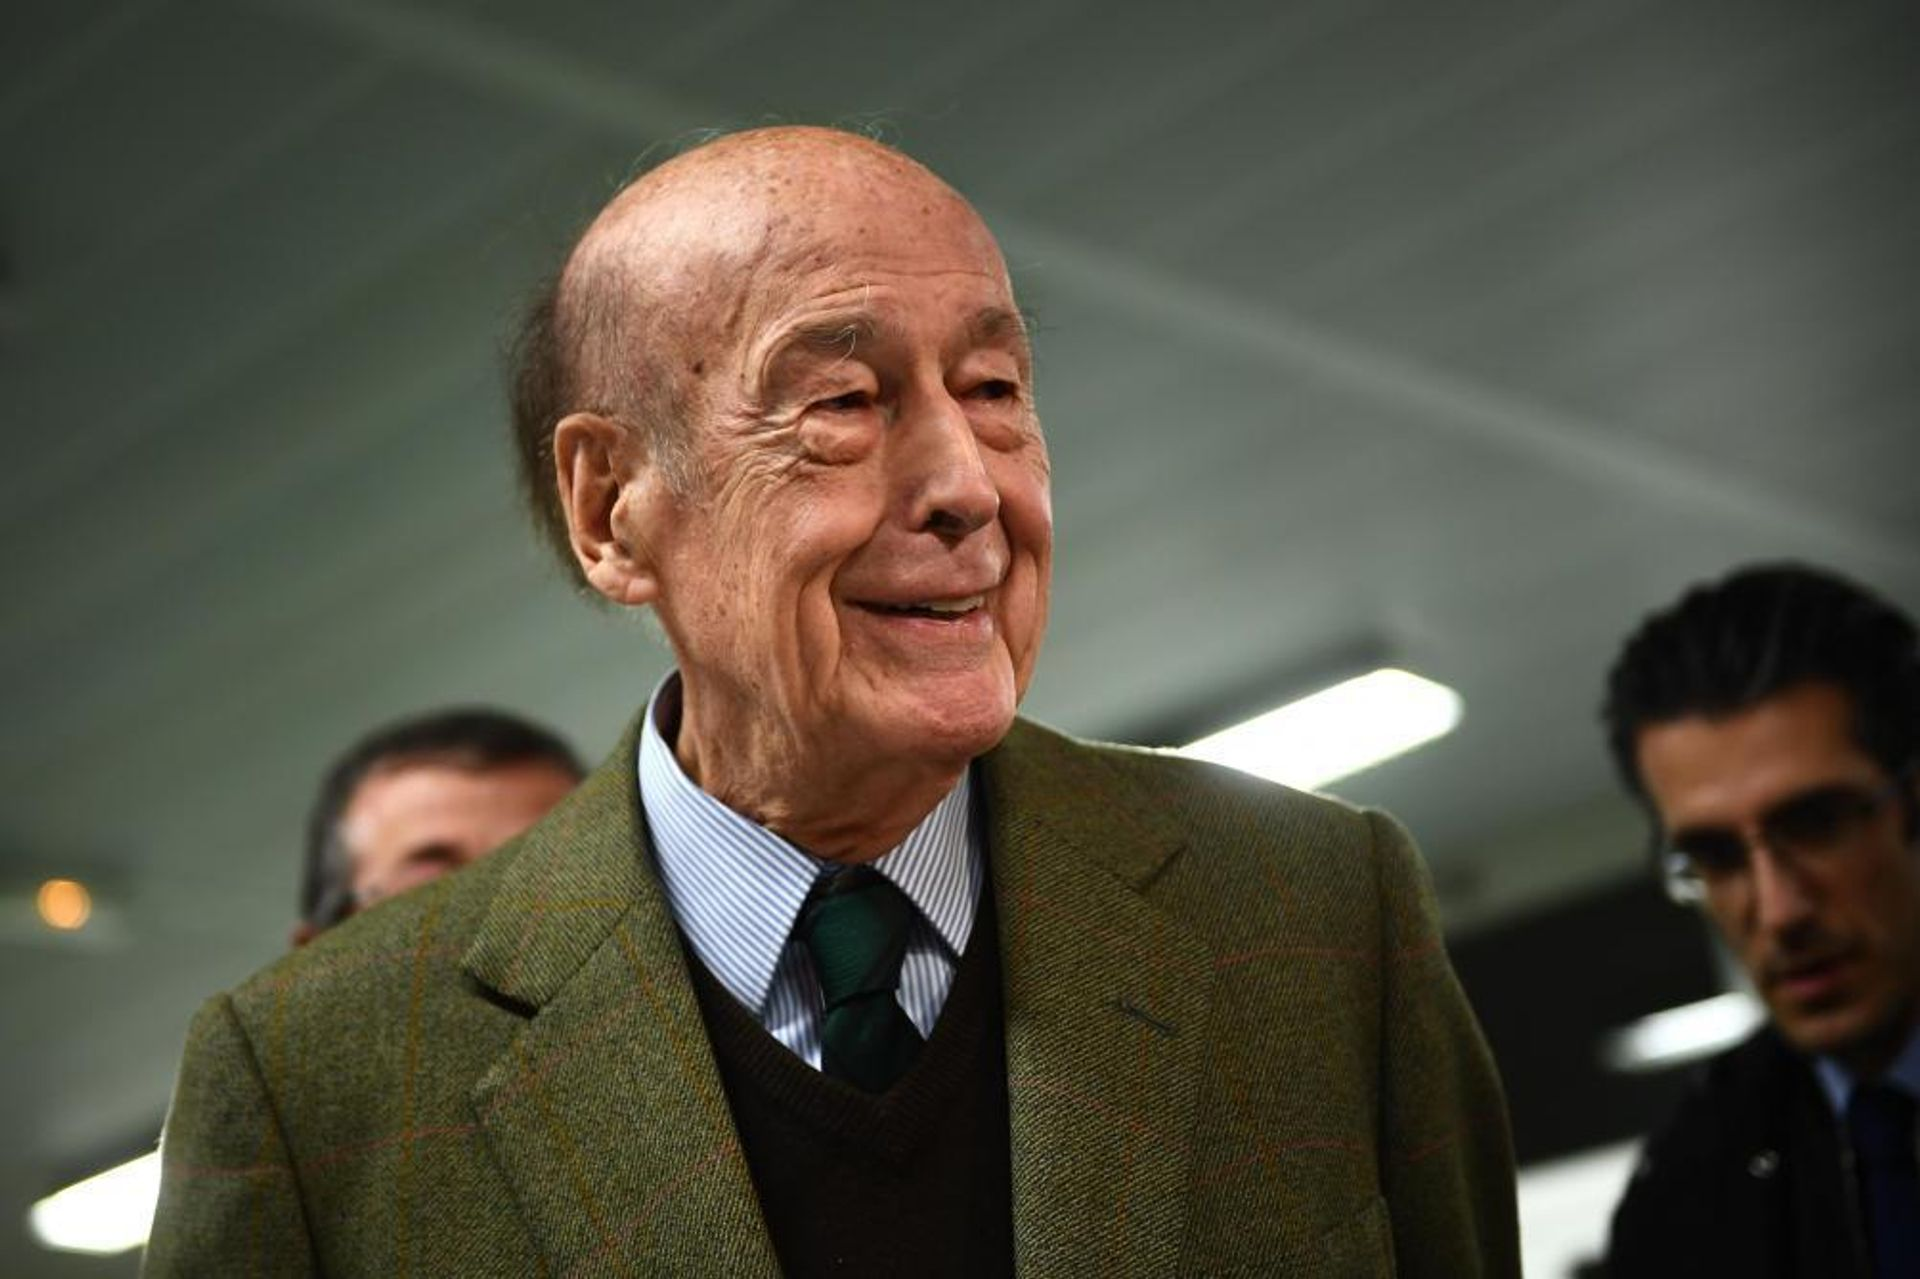 Valéry Giscard d'Estaing was France's president from 1974 to 1981